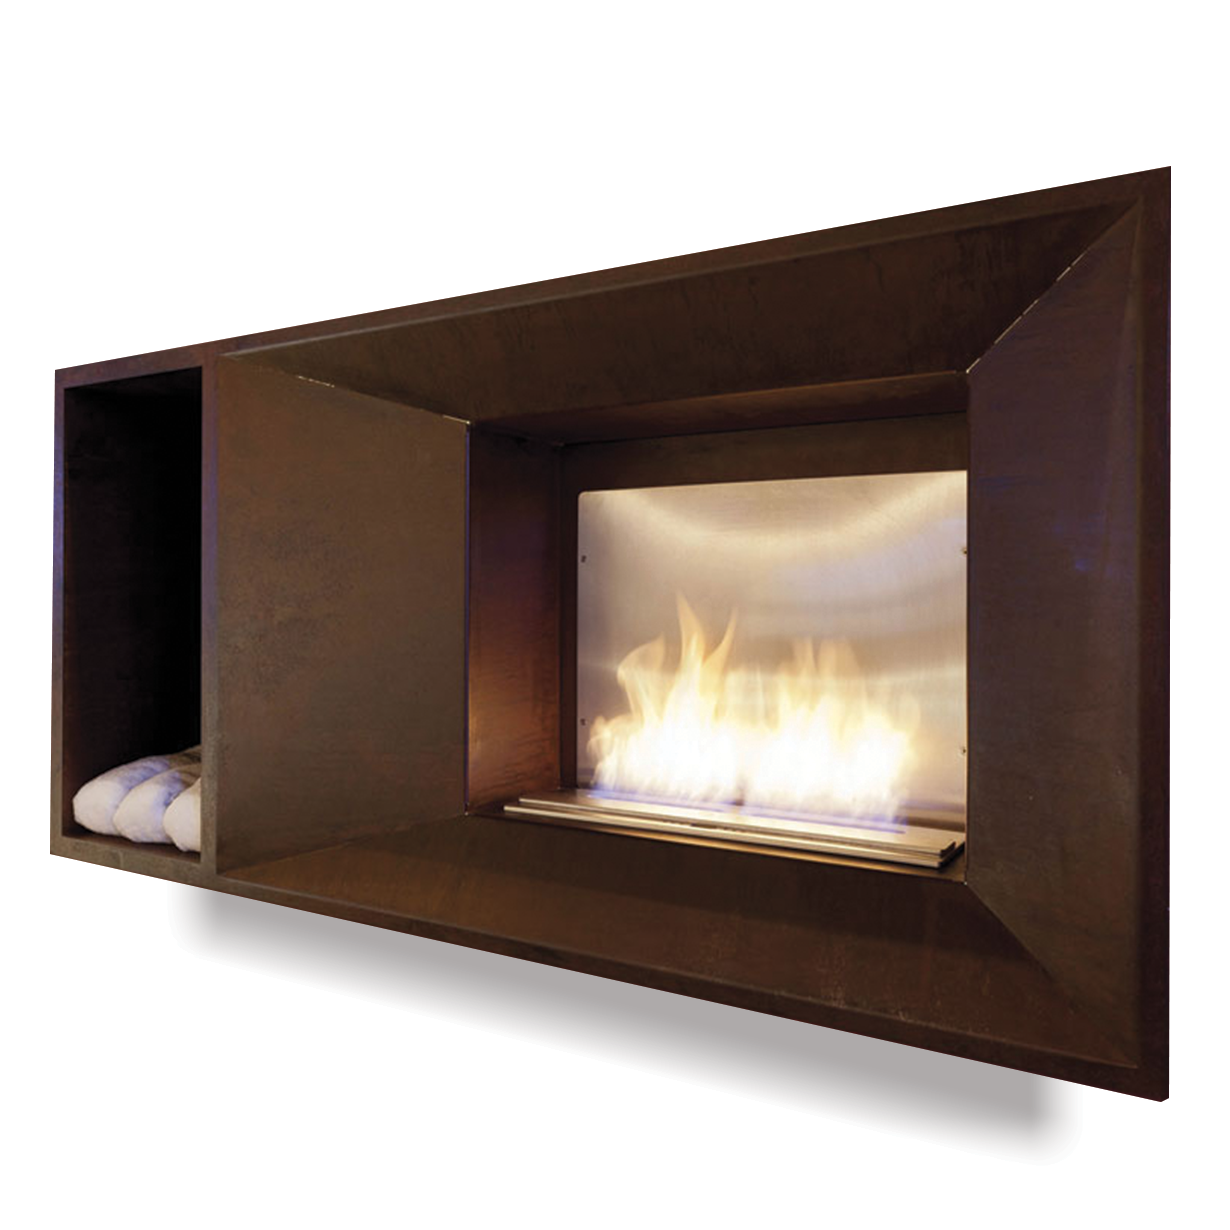 this recessed corten fireplace features essential lines and a